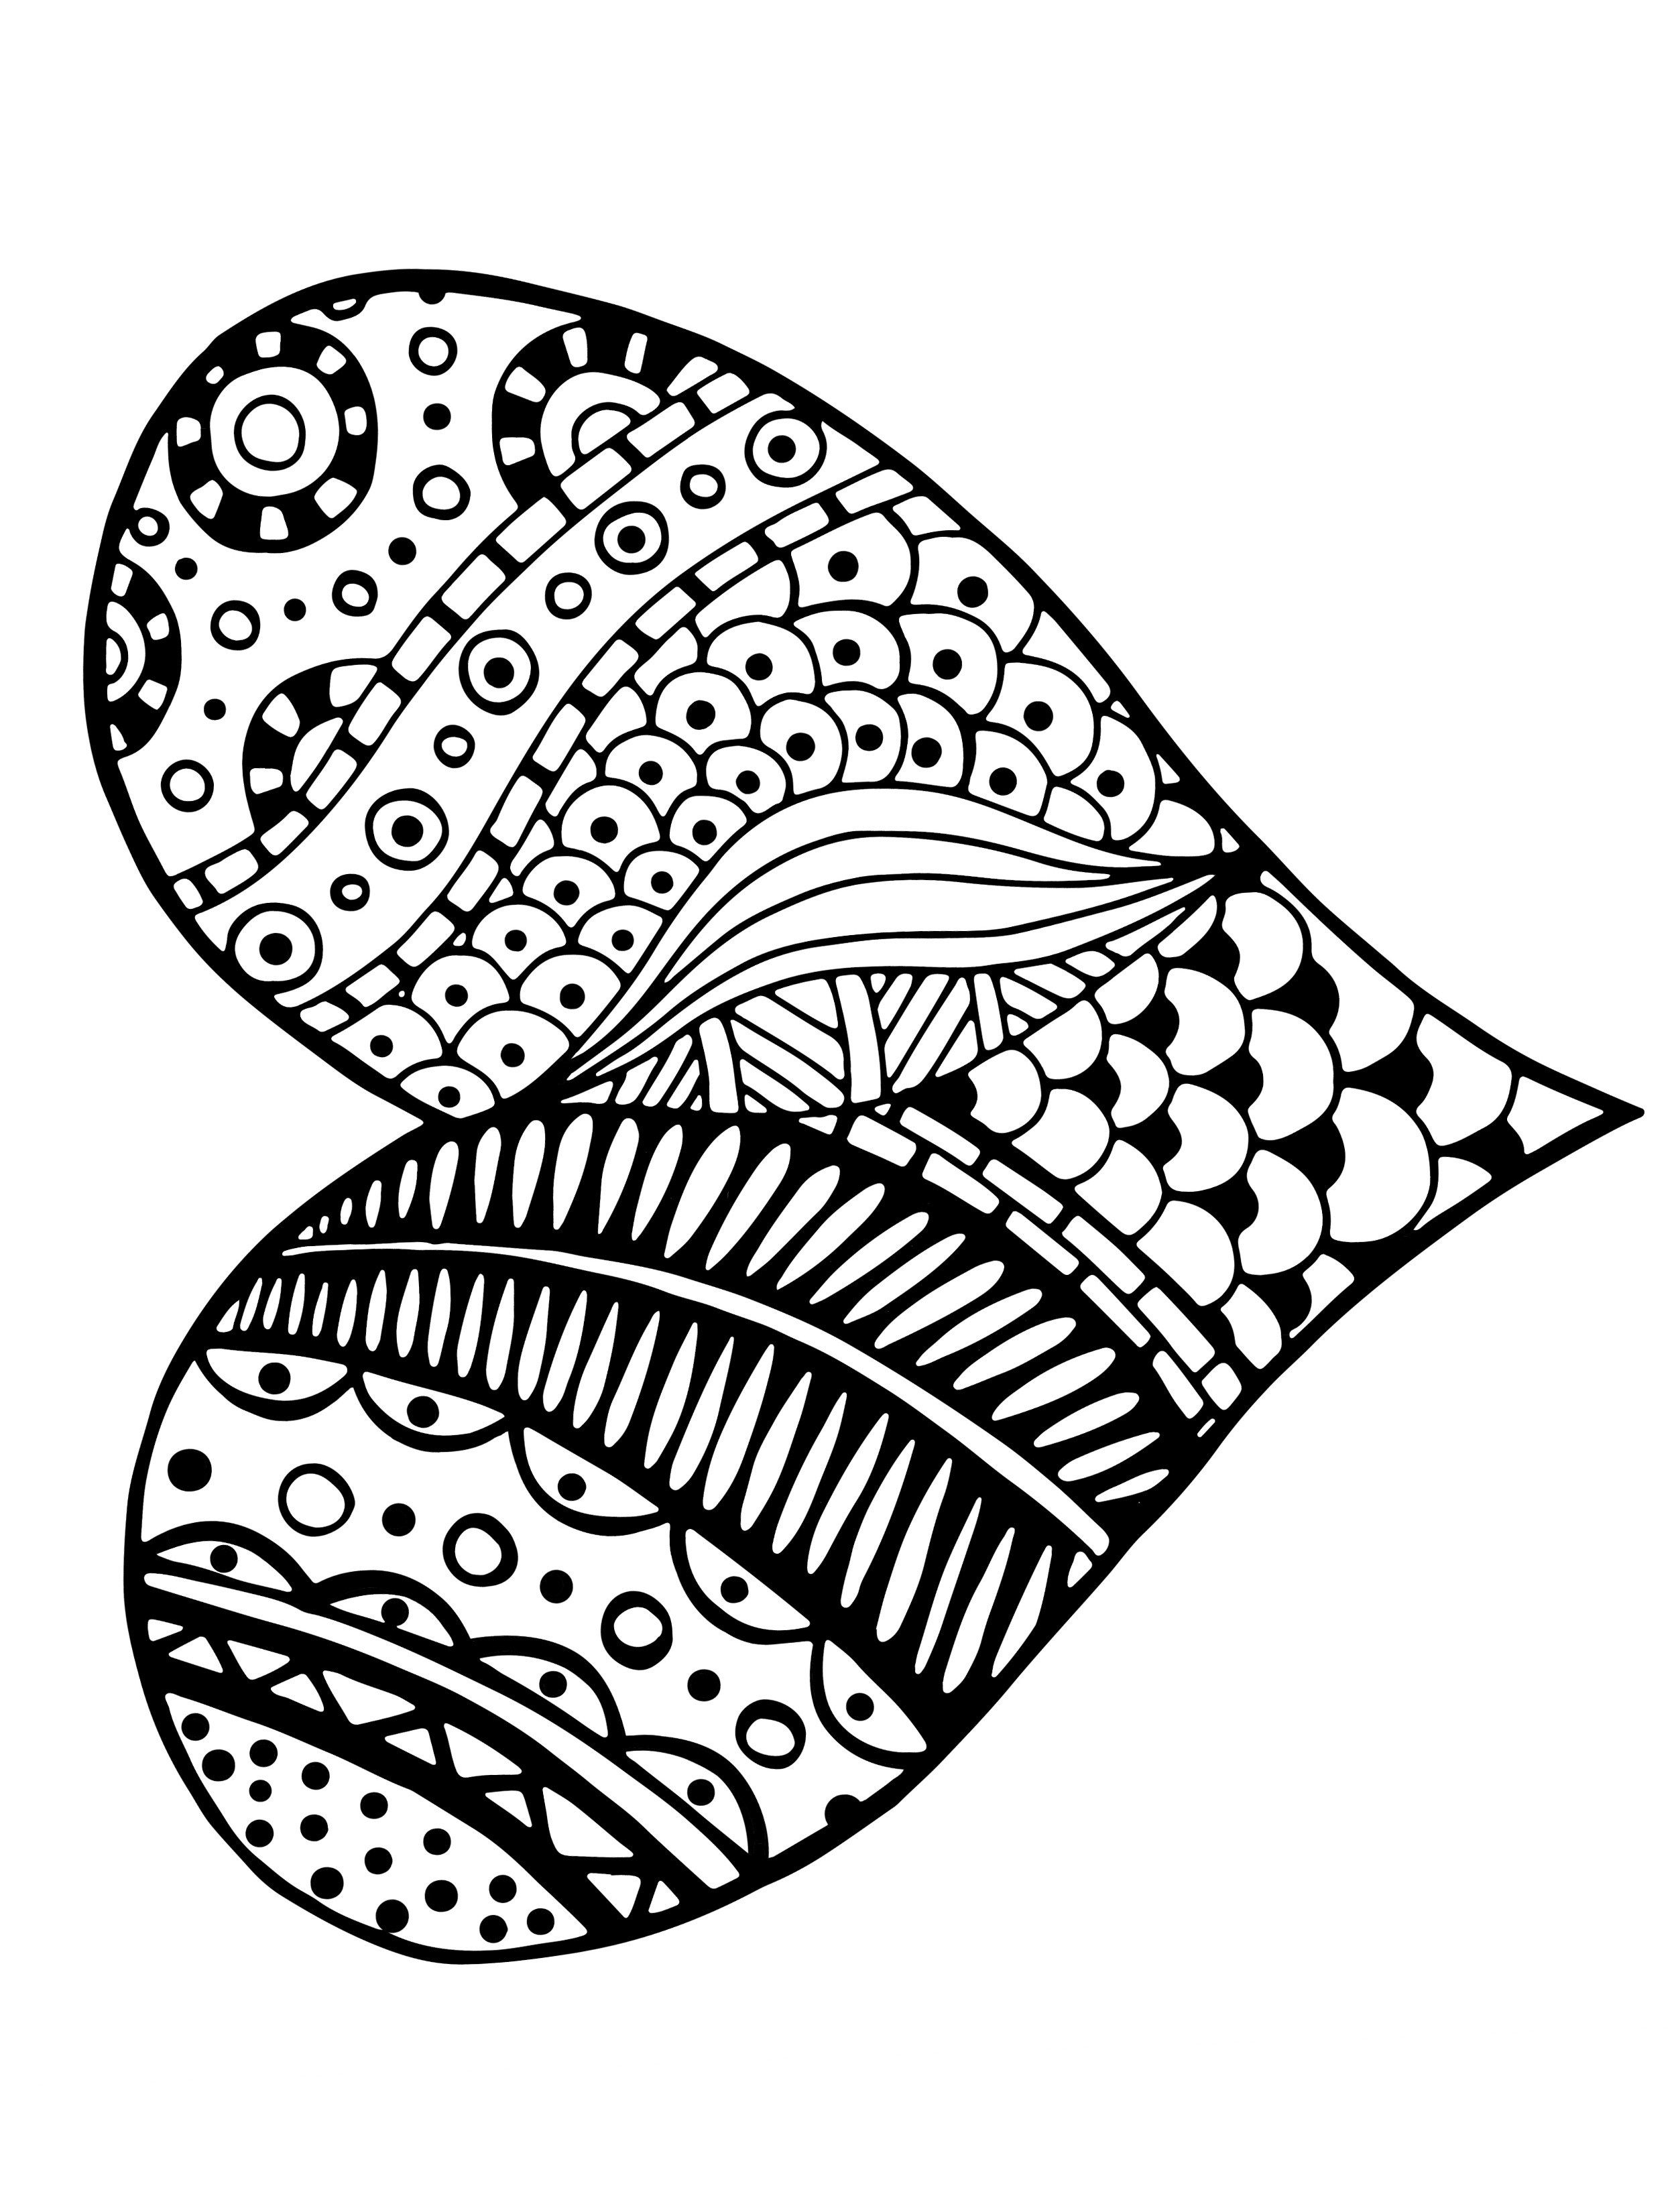 heart zentangle coloring pages - photo#41